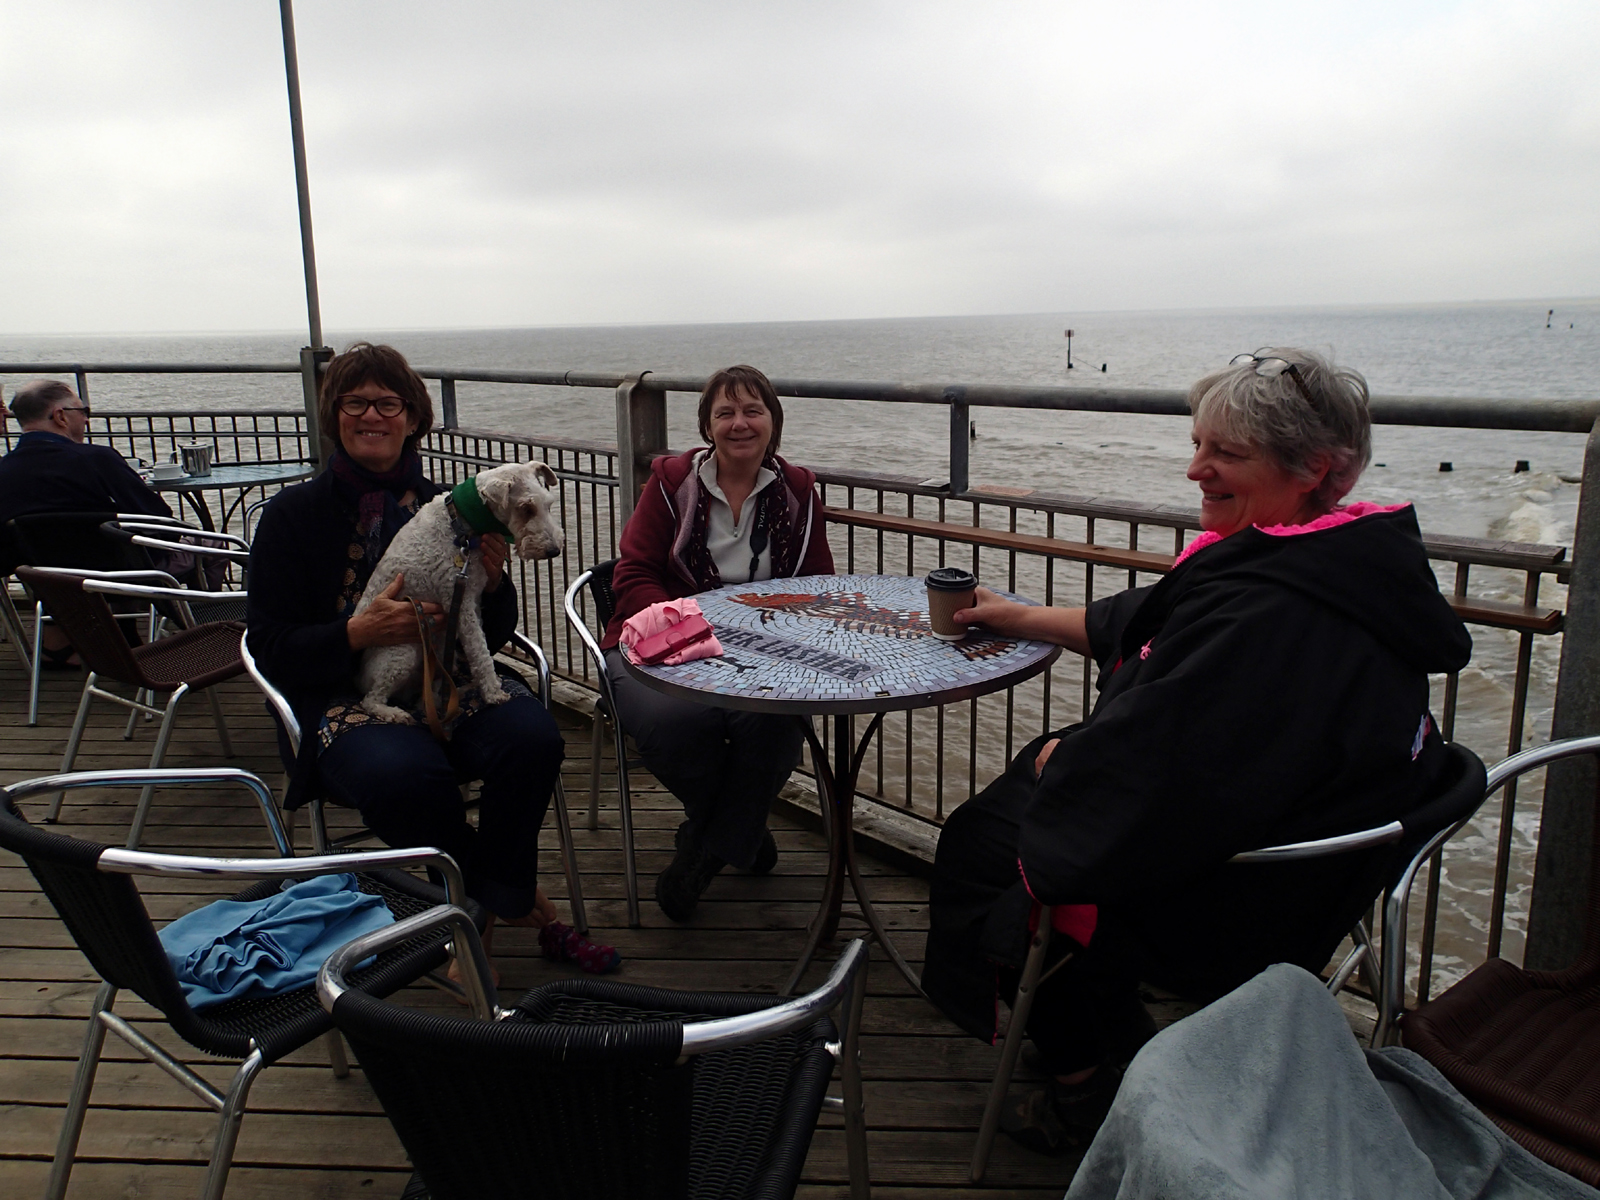 3 supporters and sister swimmers (one with dog) sit at table on pier